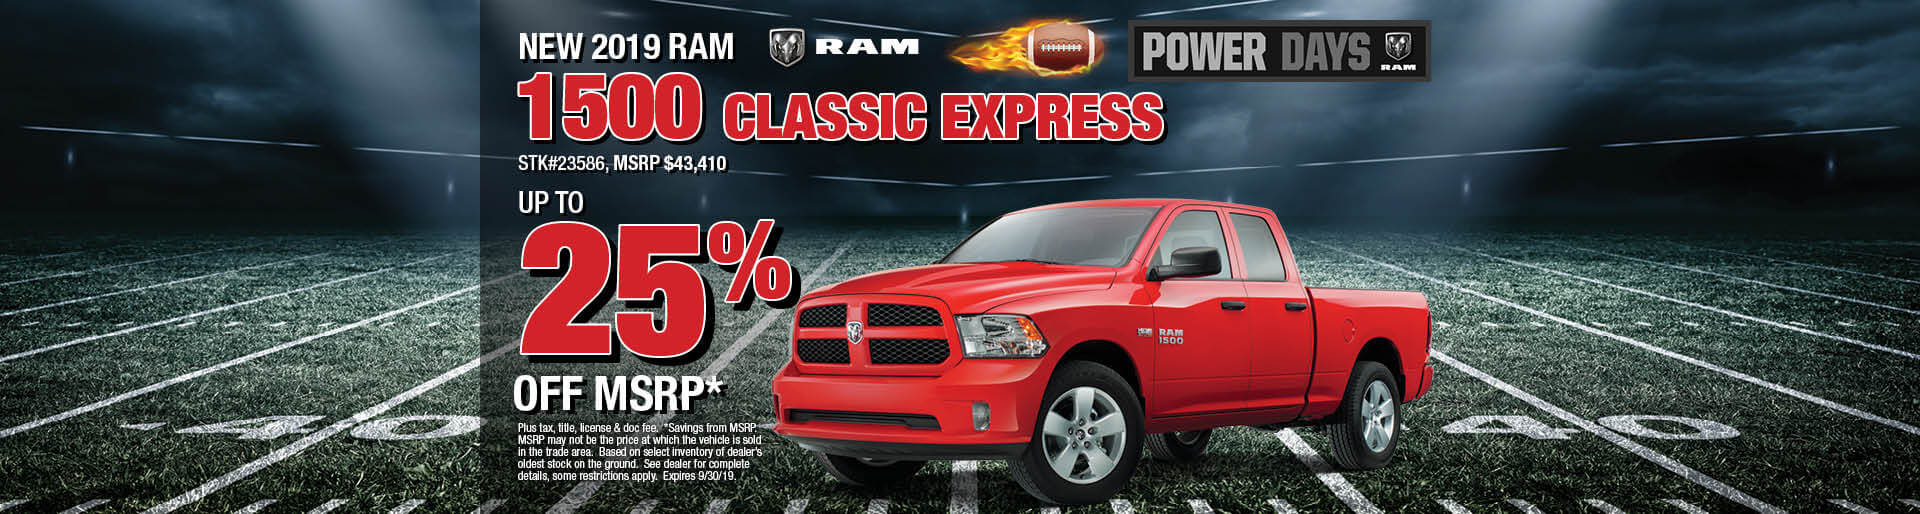 Get Up to 25% off MSRP on a 2019 Ram 1500 Classic Express